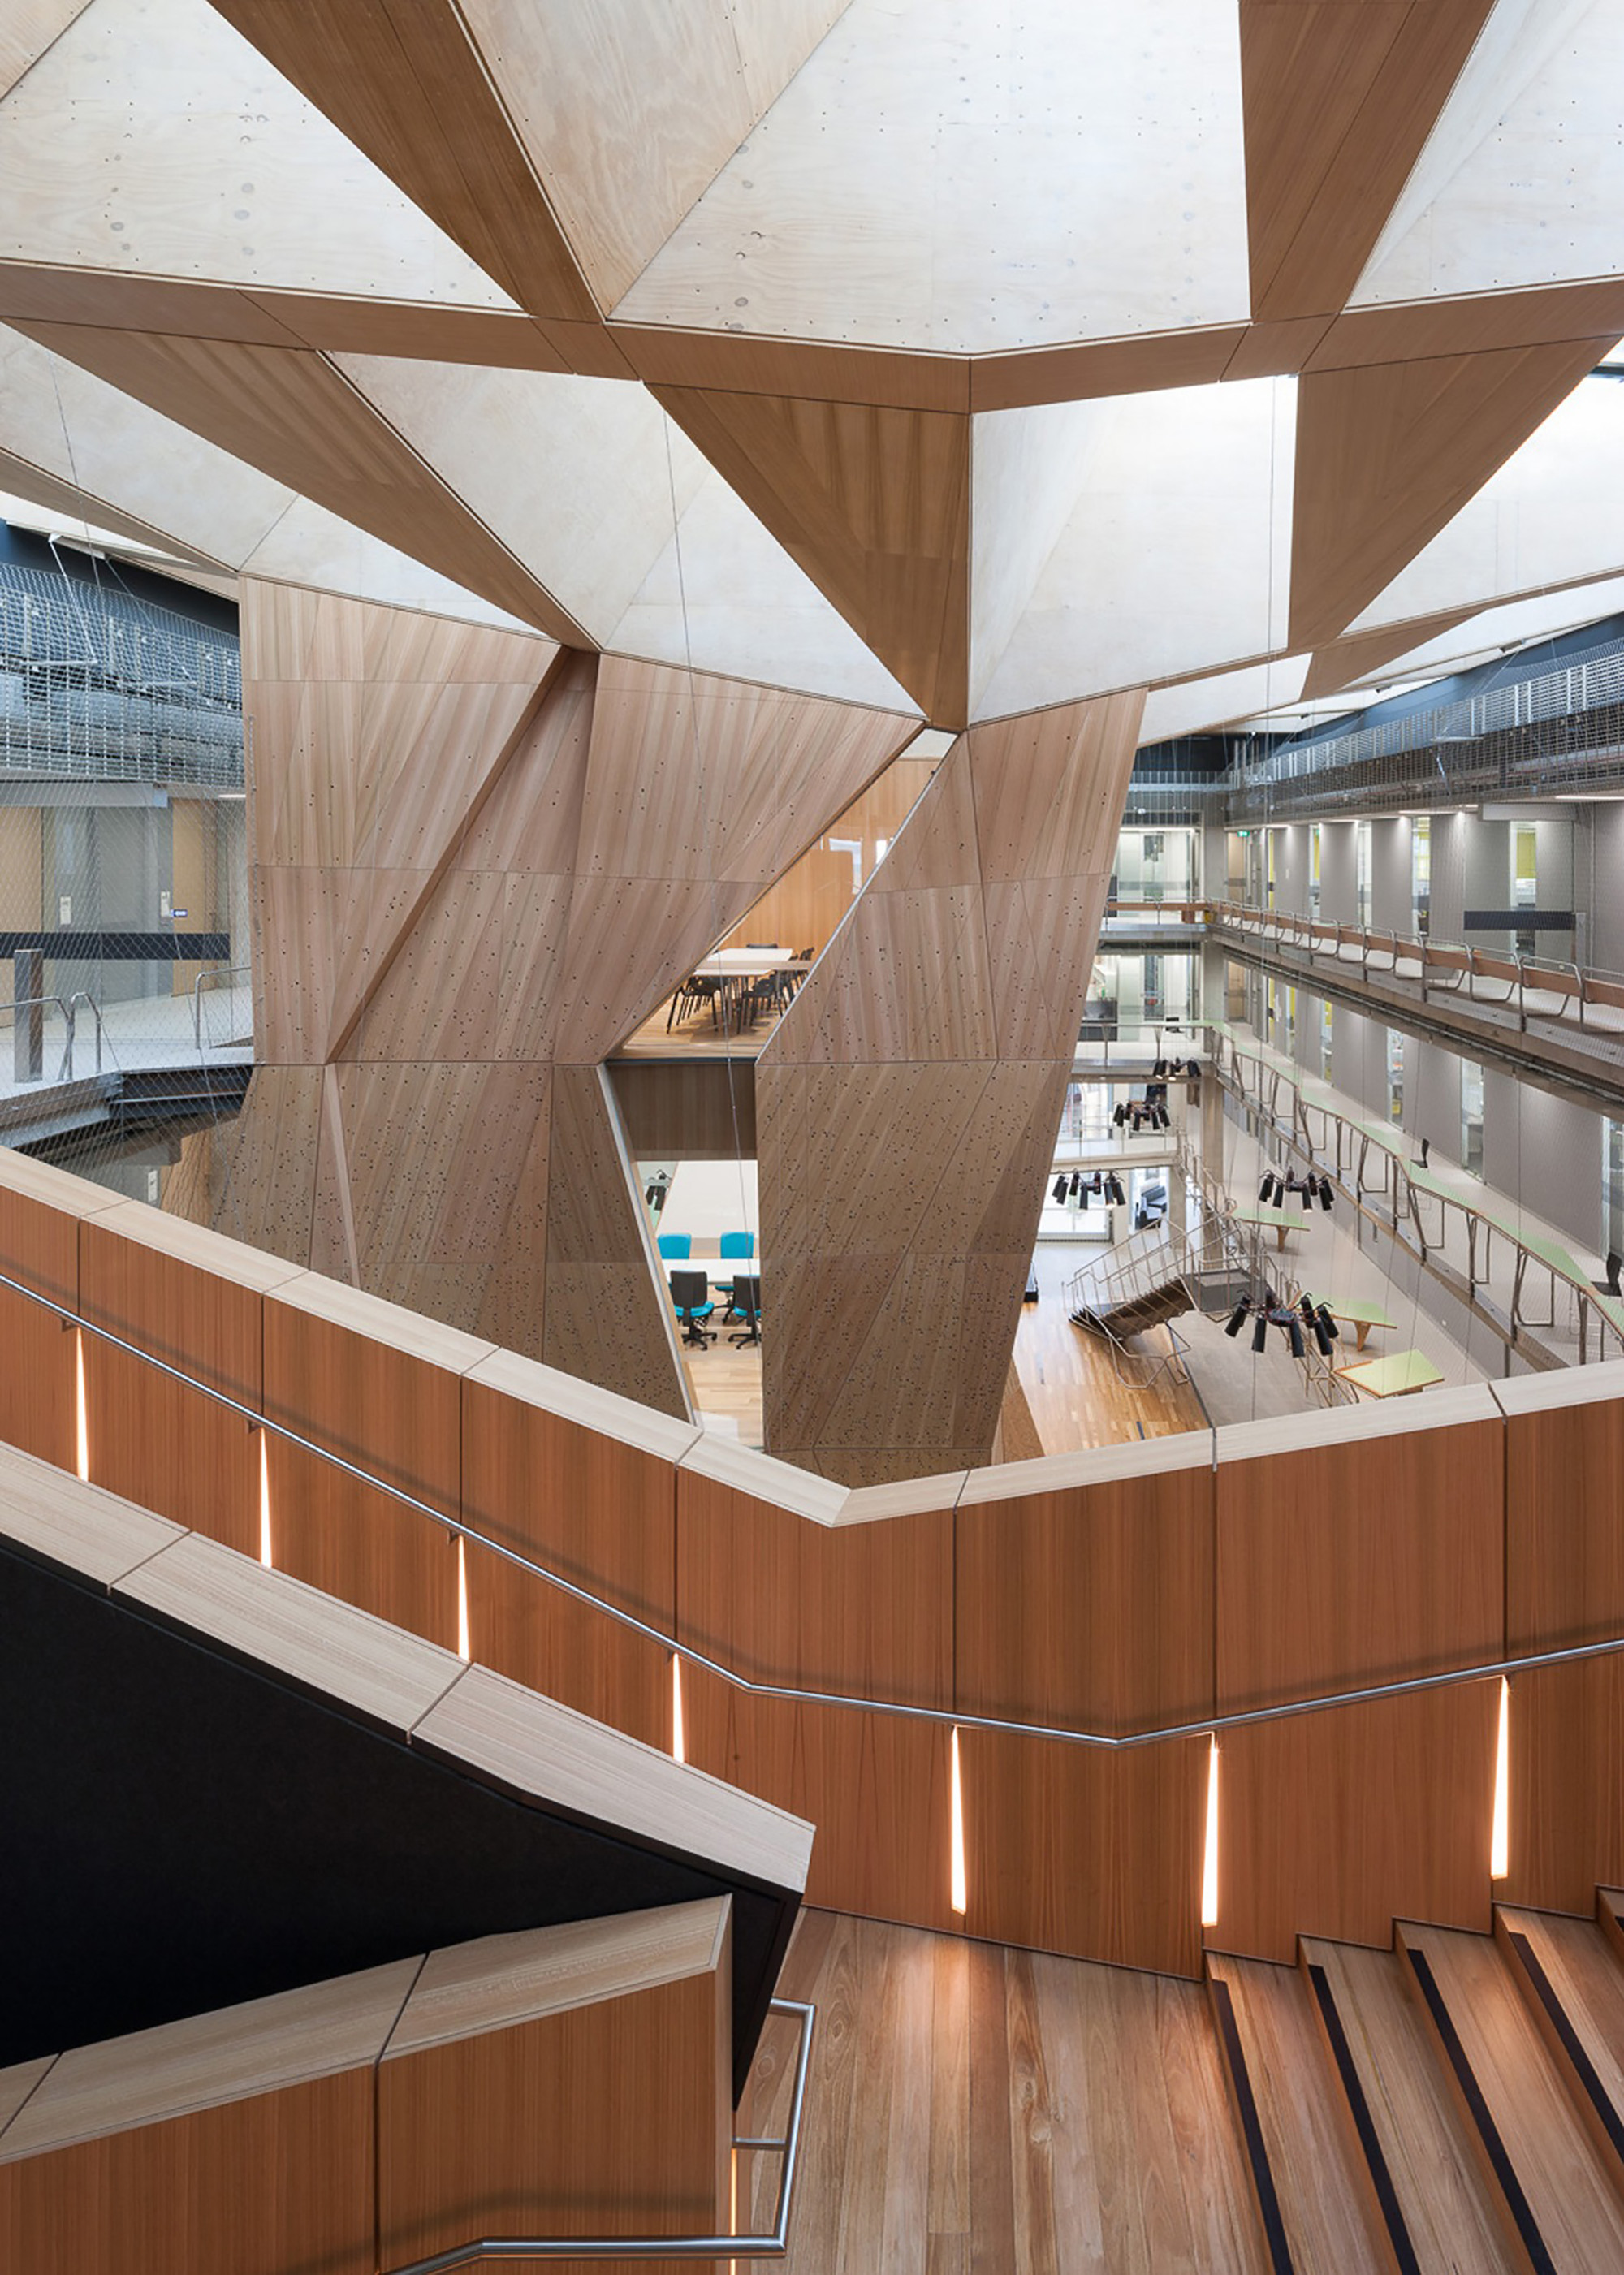 Melbourne School Of Design University NADAAA John Wardle Architects